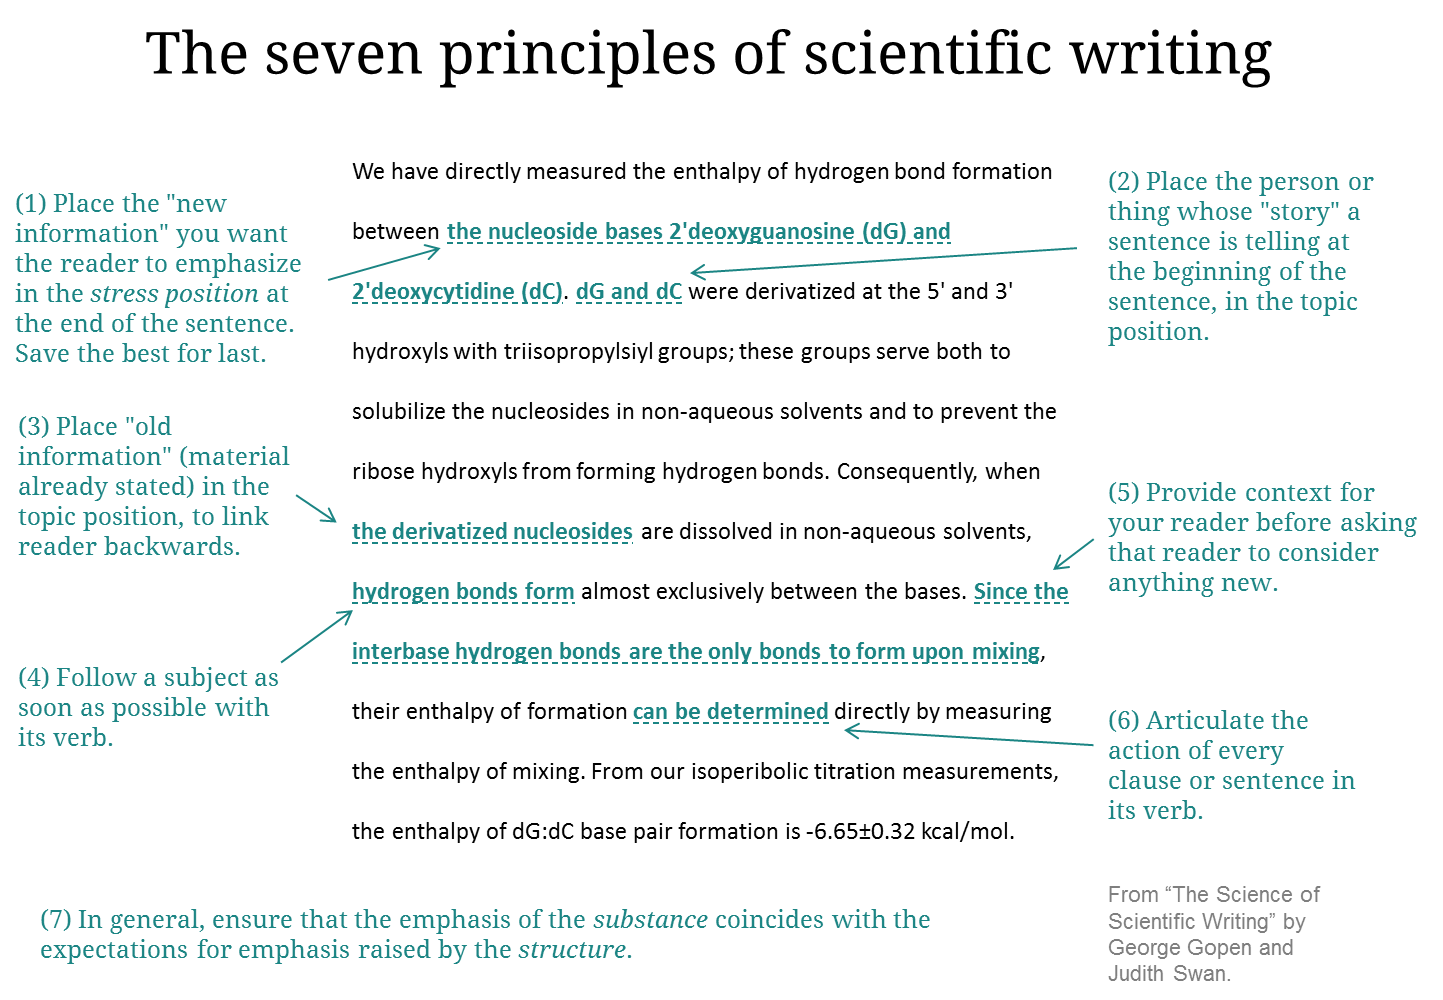 how to write a good thesis statement for an essay chapter what are  dr richard s mcbride supervisory research fishery biologist dr richard s  mcbride supervisory research fishery biologist example of a thesis statement in an essay also an essay on science how to write a proposal essay outline